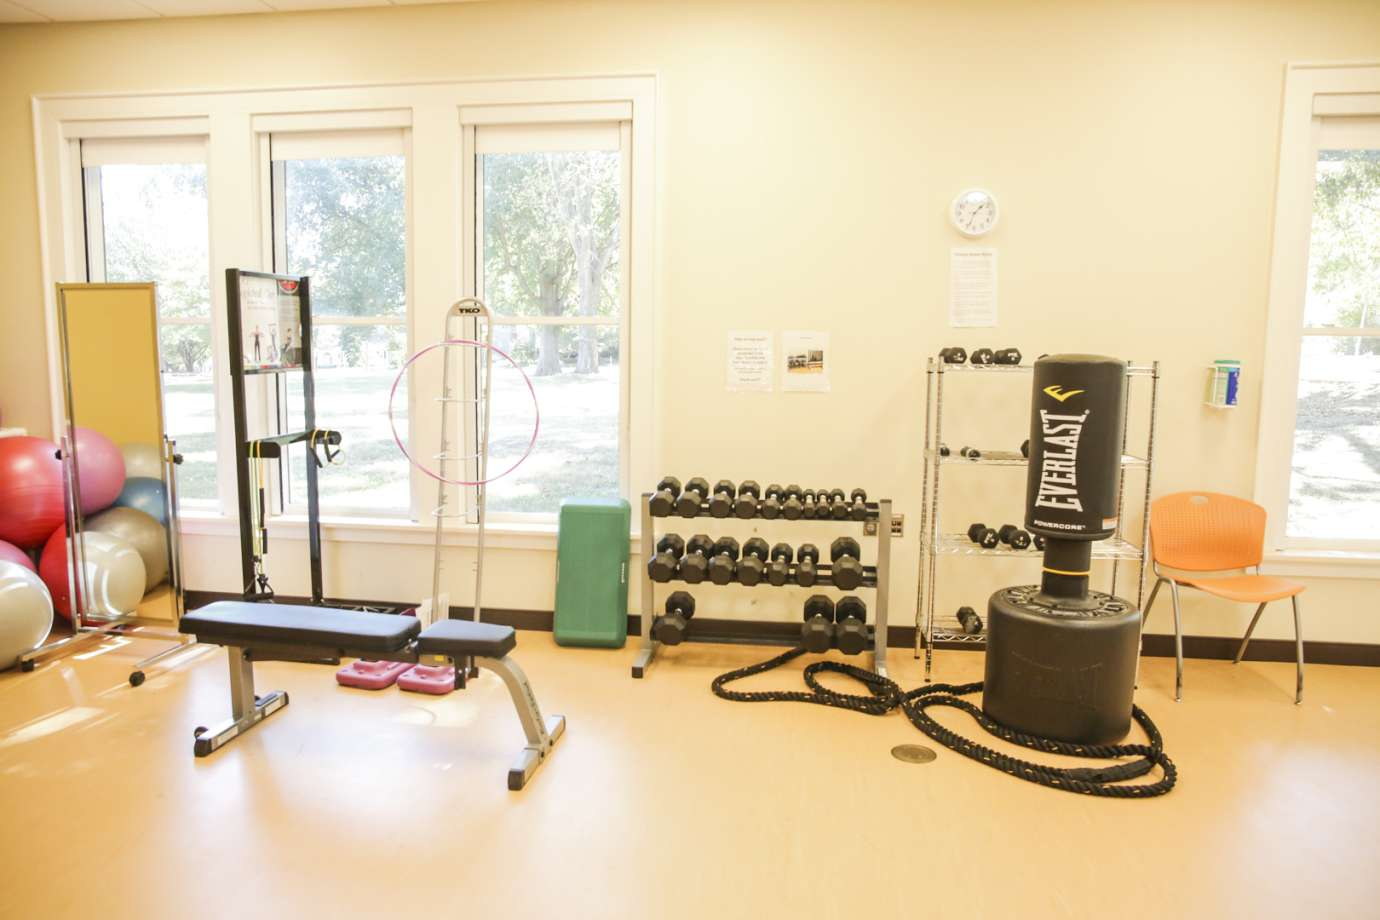 A fitness room with a punching bag, weights and cardio equipment